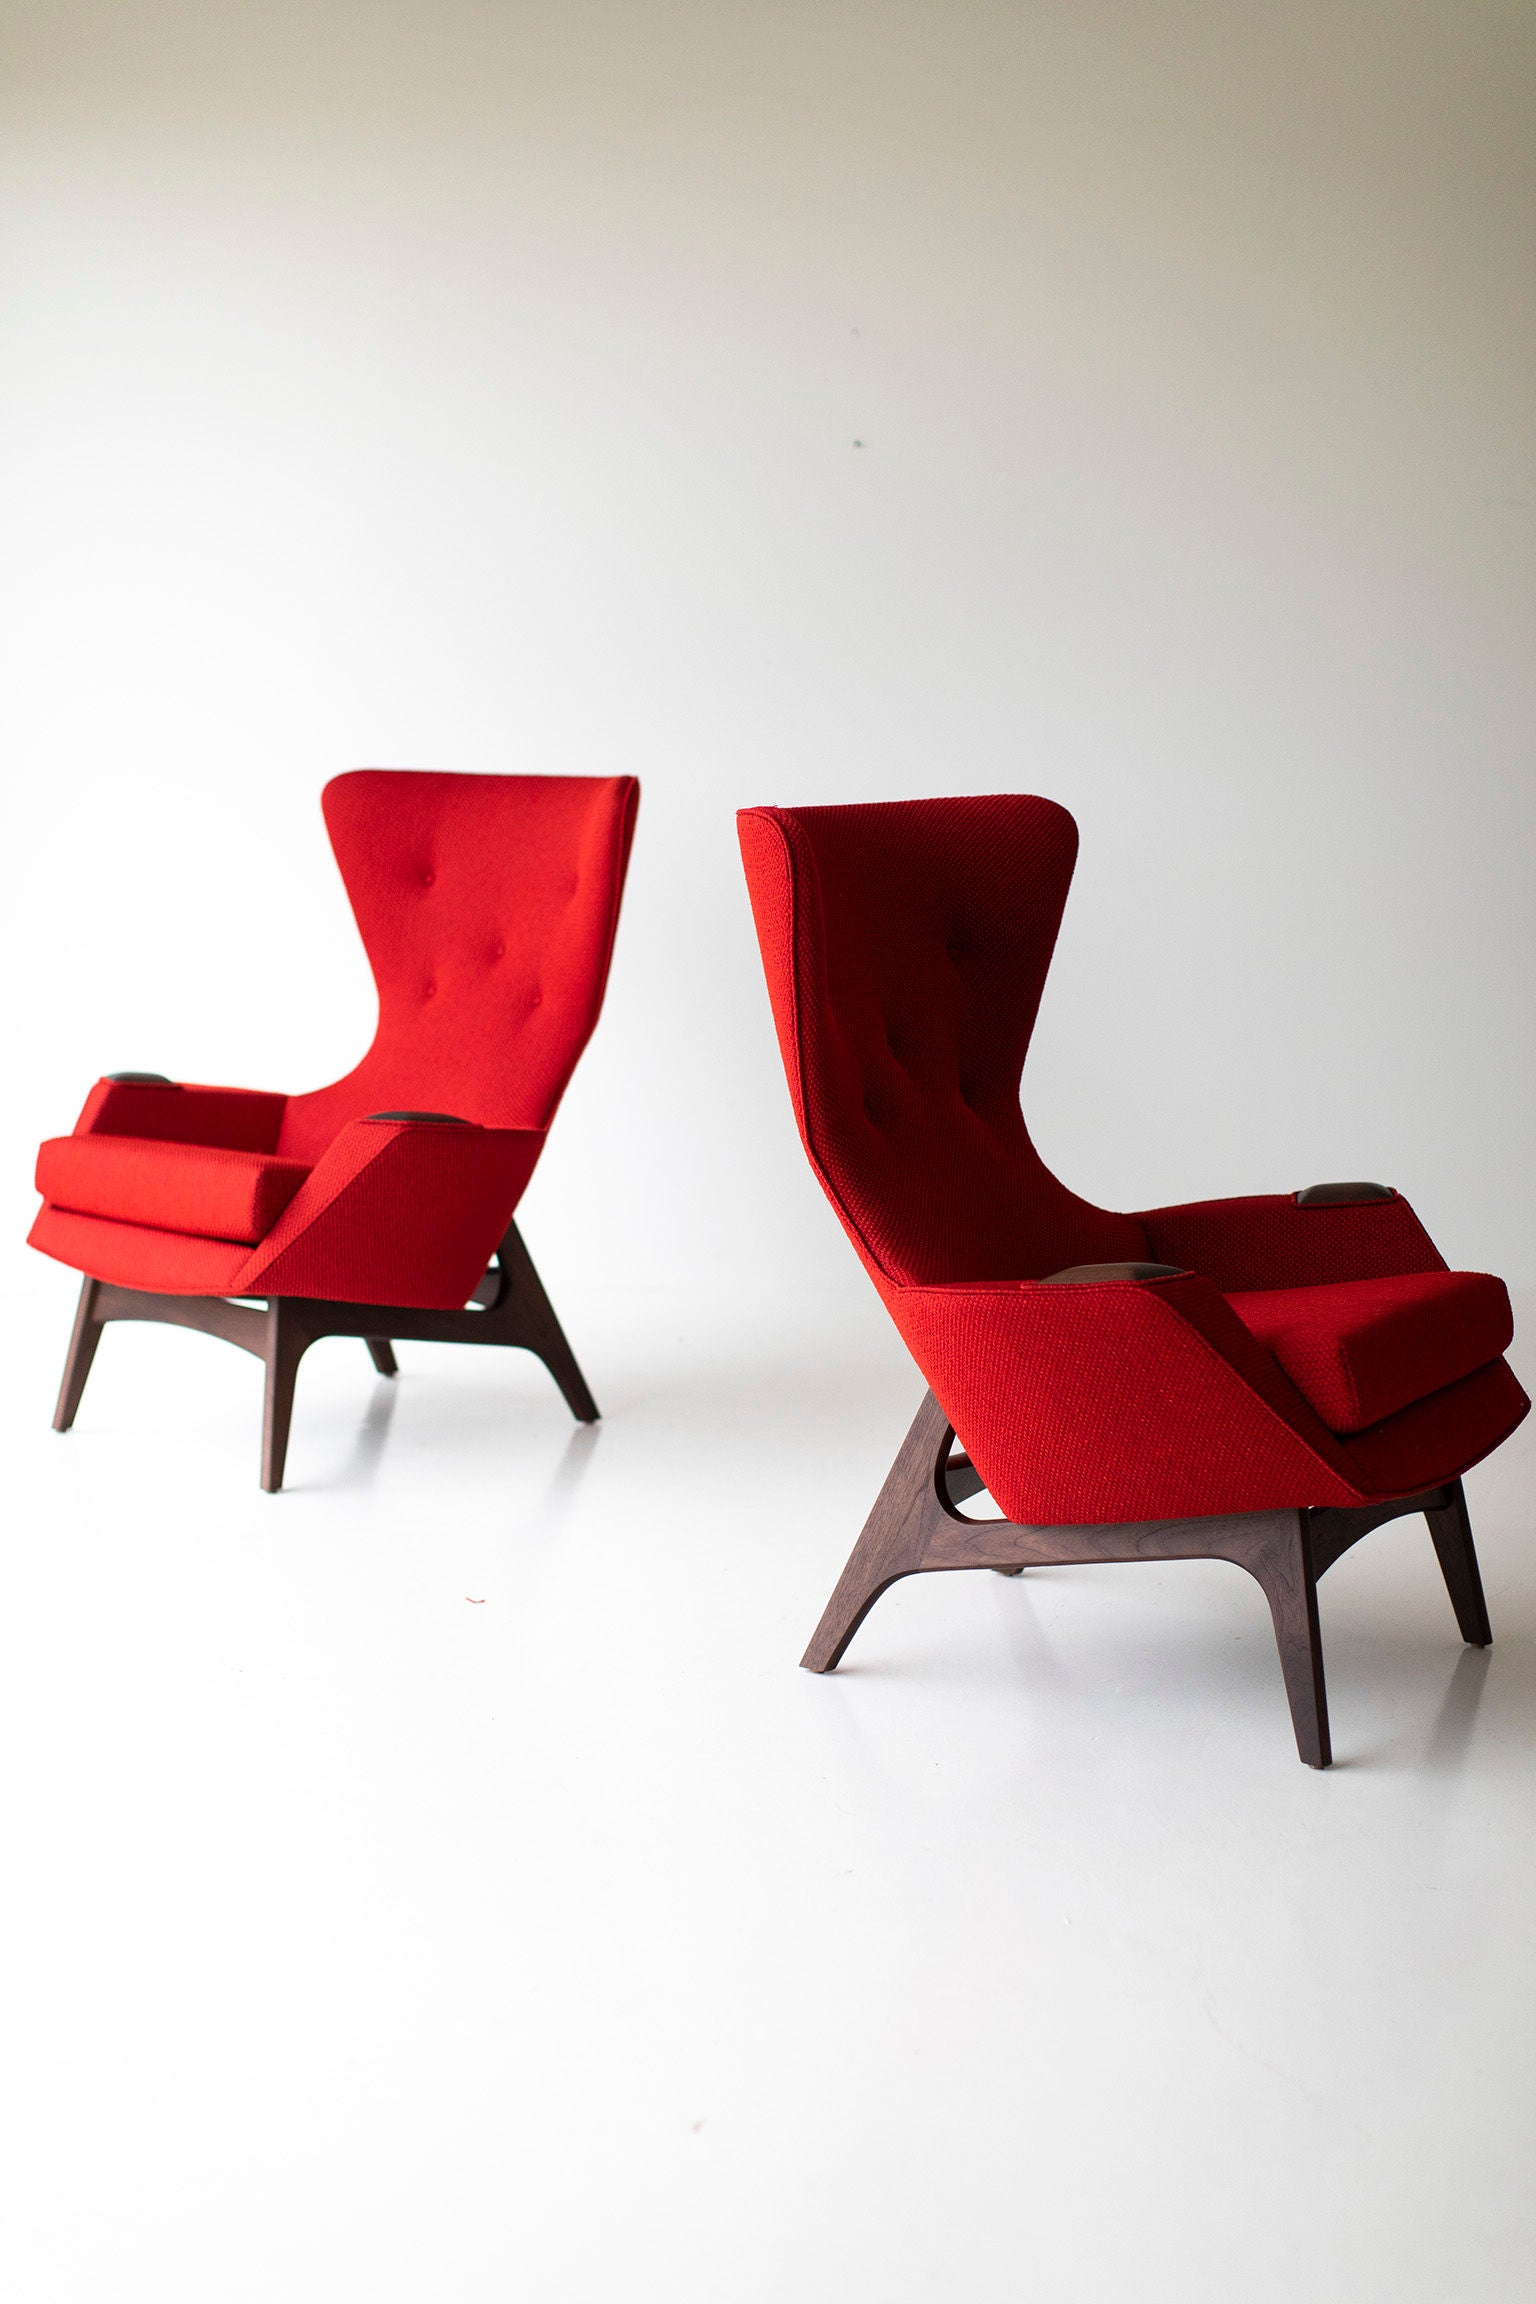 0T3A8903-Red-Wing-Chairs-01